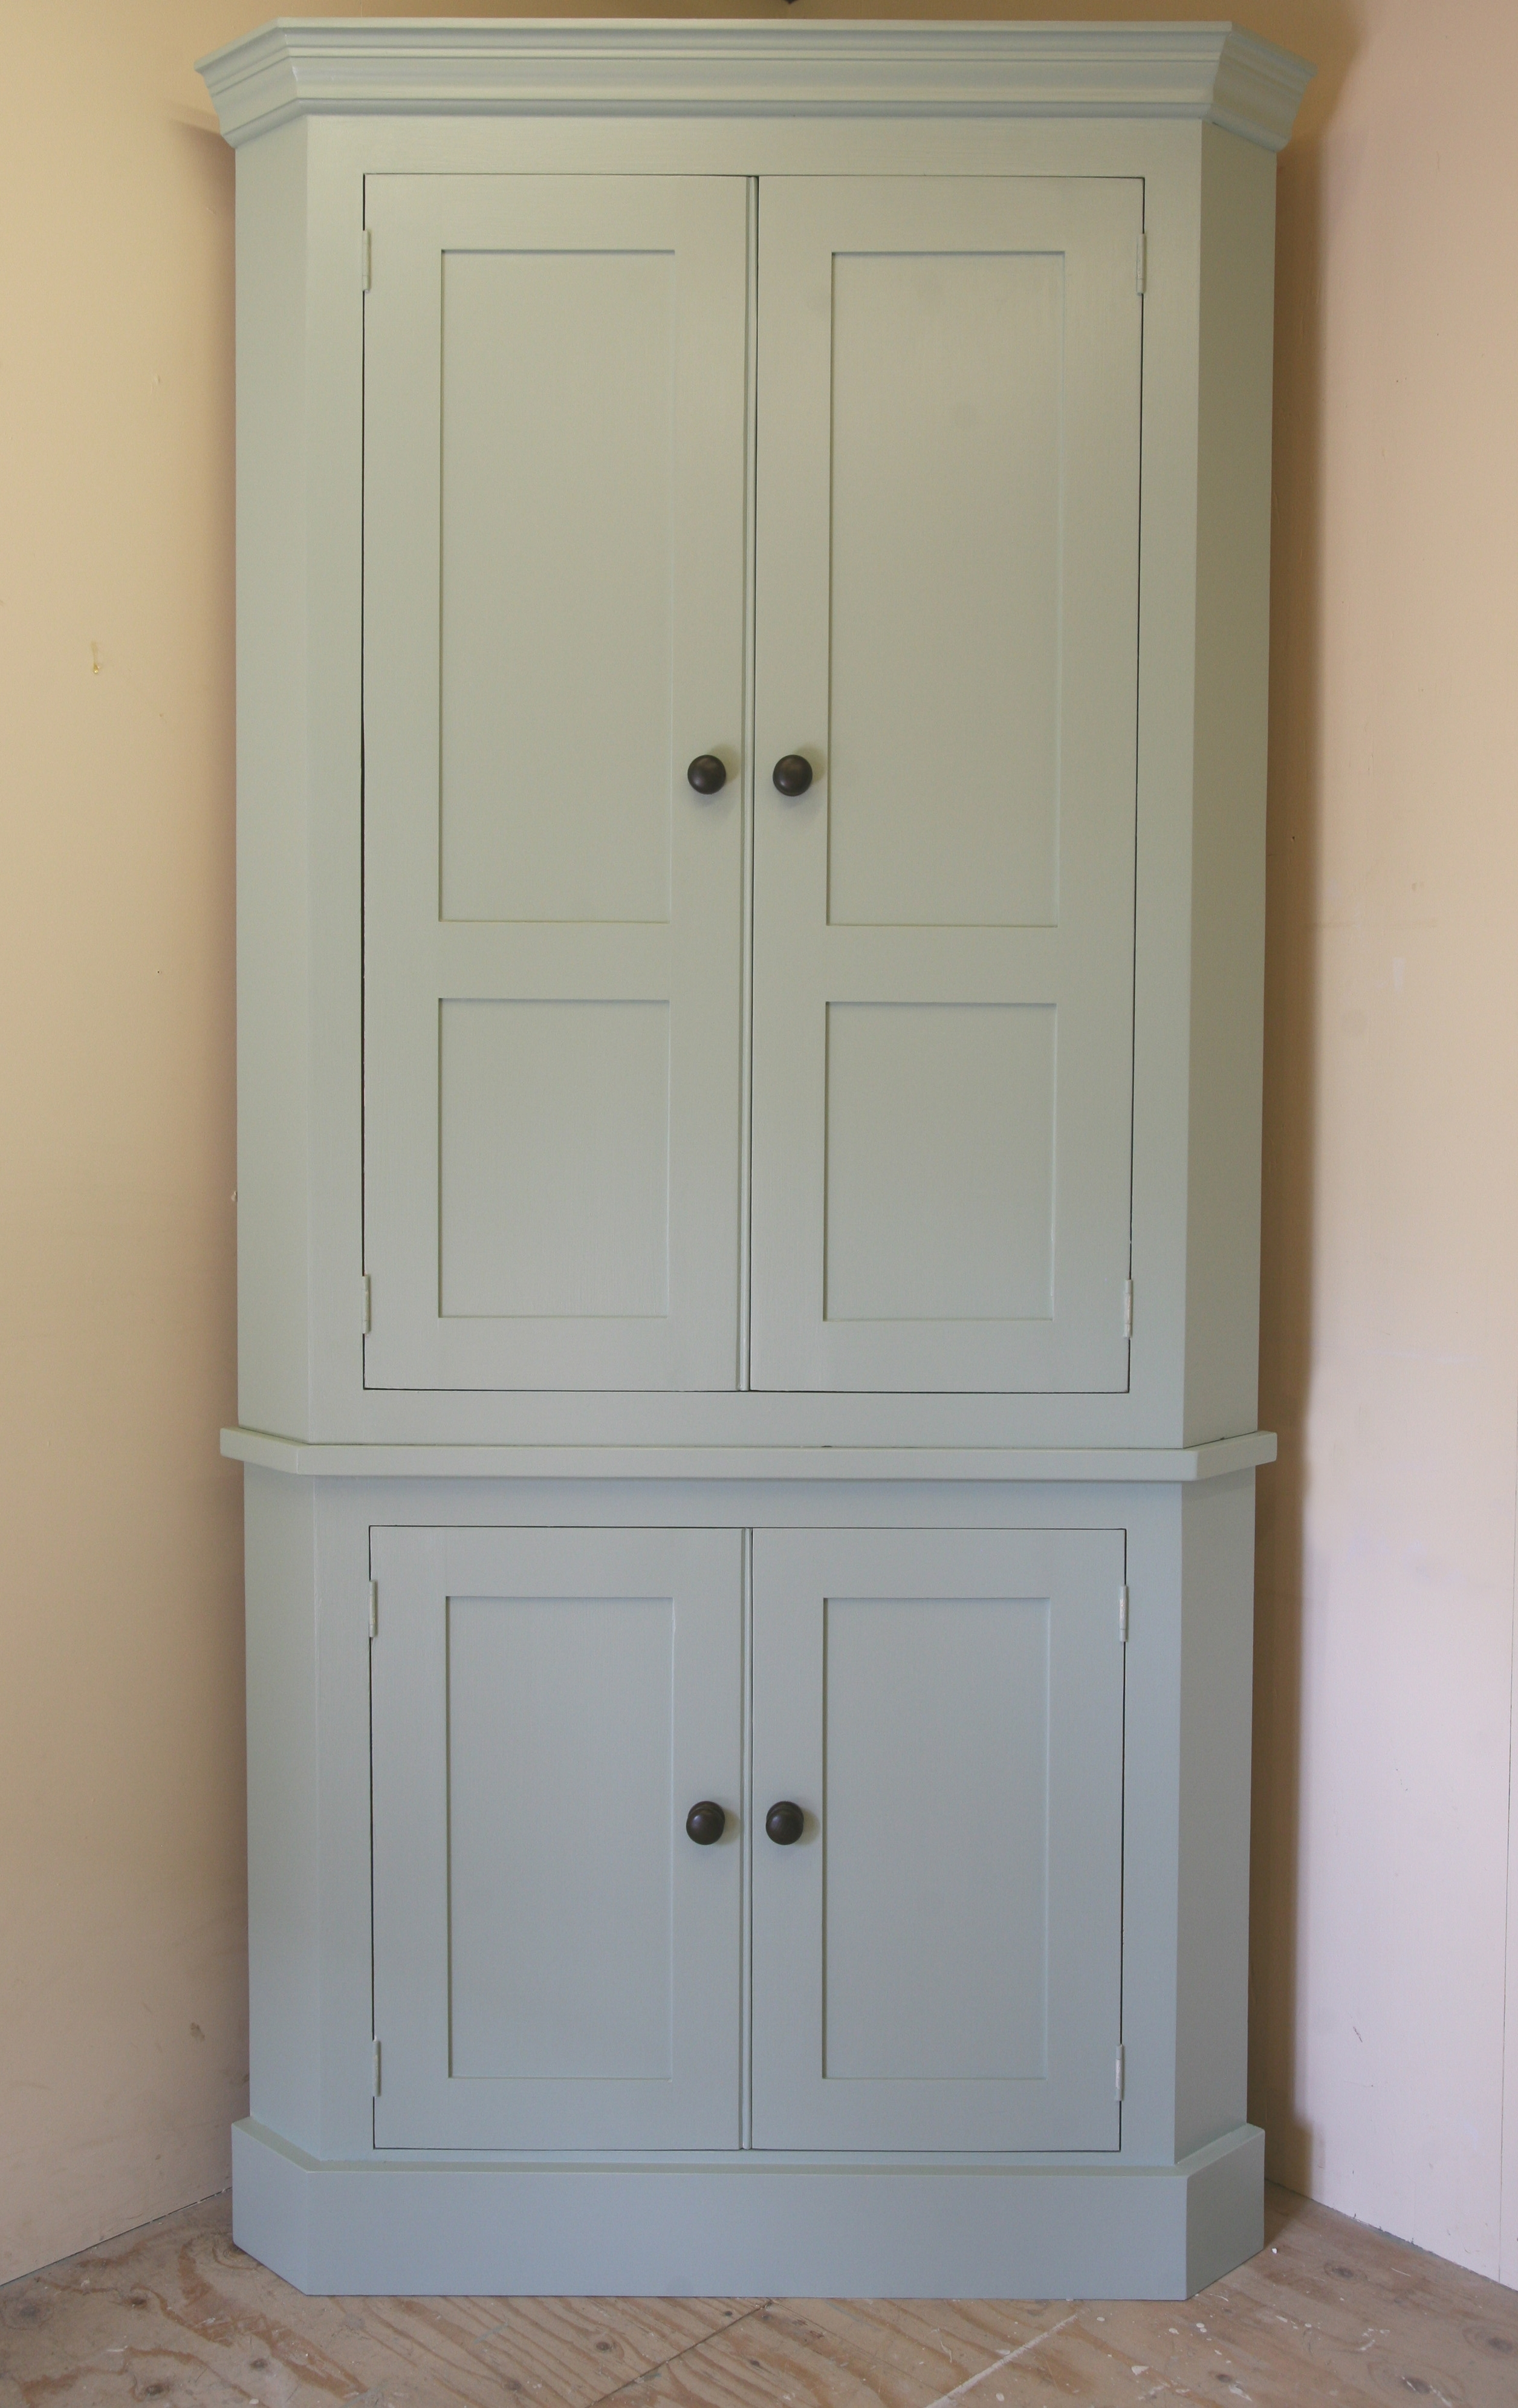 2017 Free Cupboards In Complete Your Corner With Our Tall Larder Corner Cupboard (View 4 of 15)